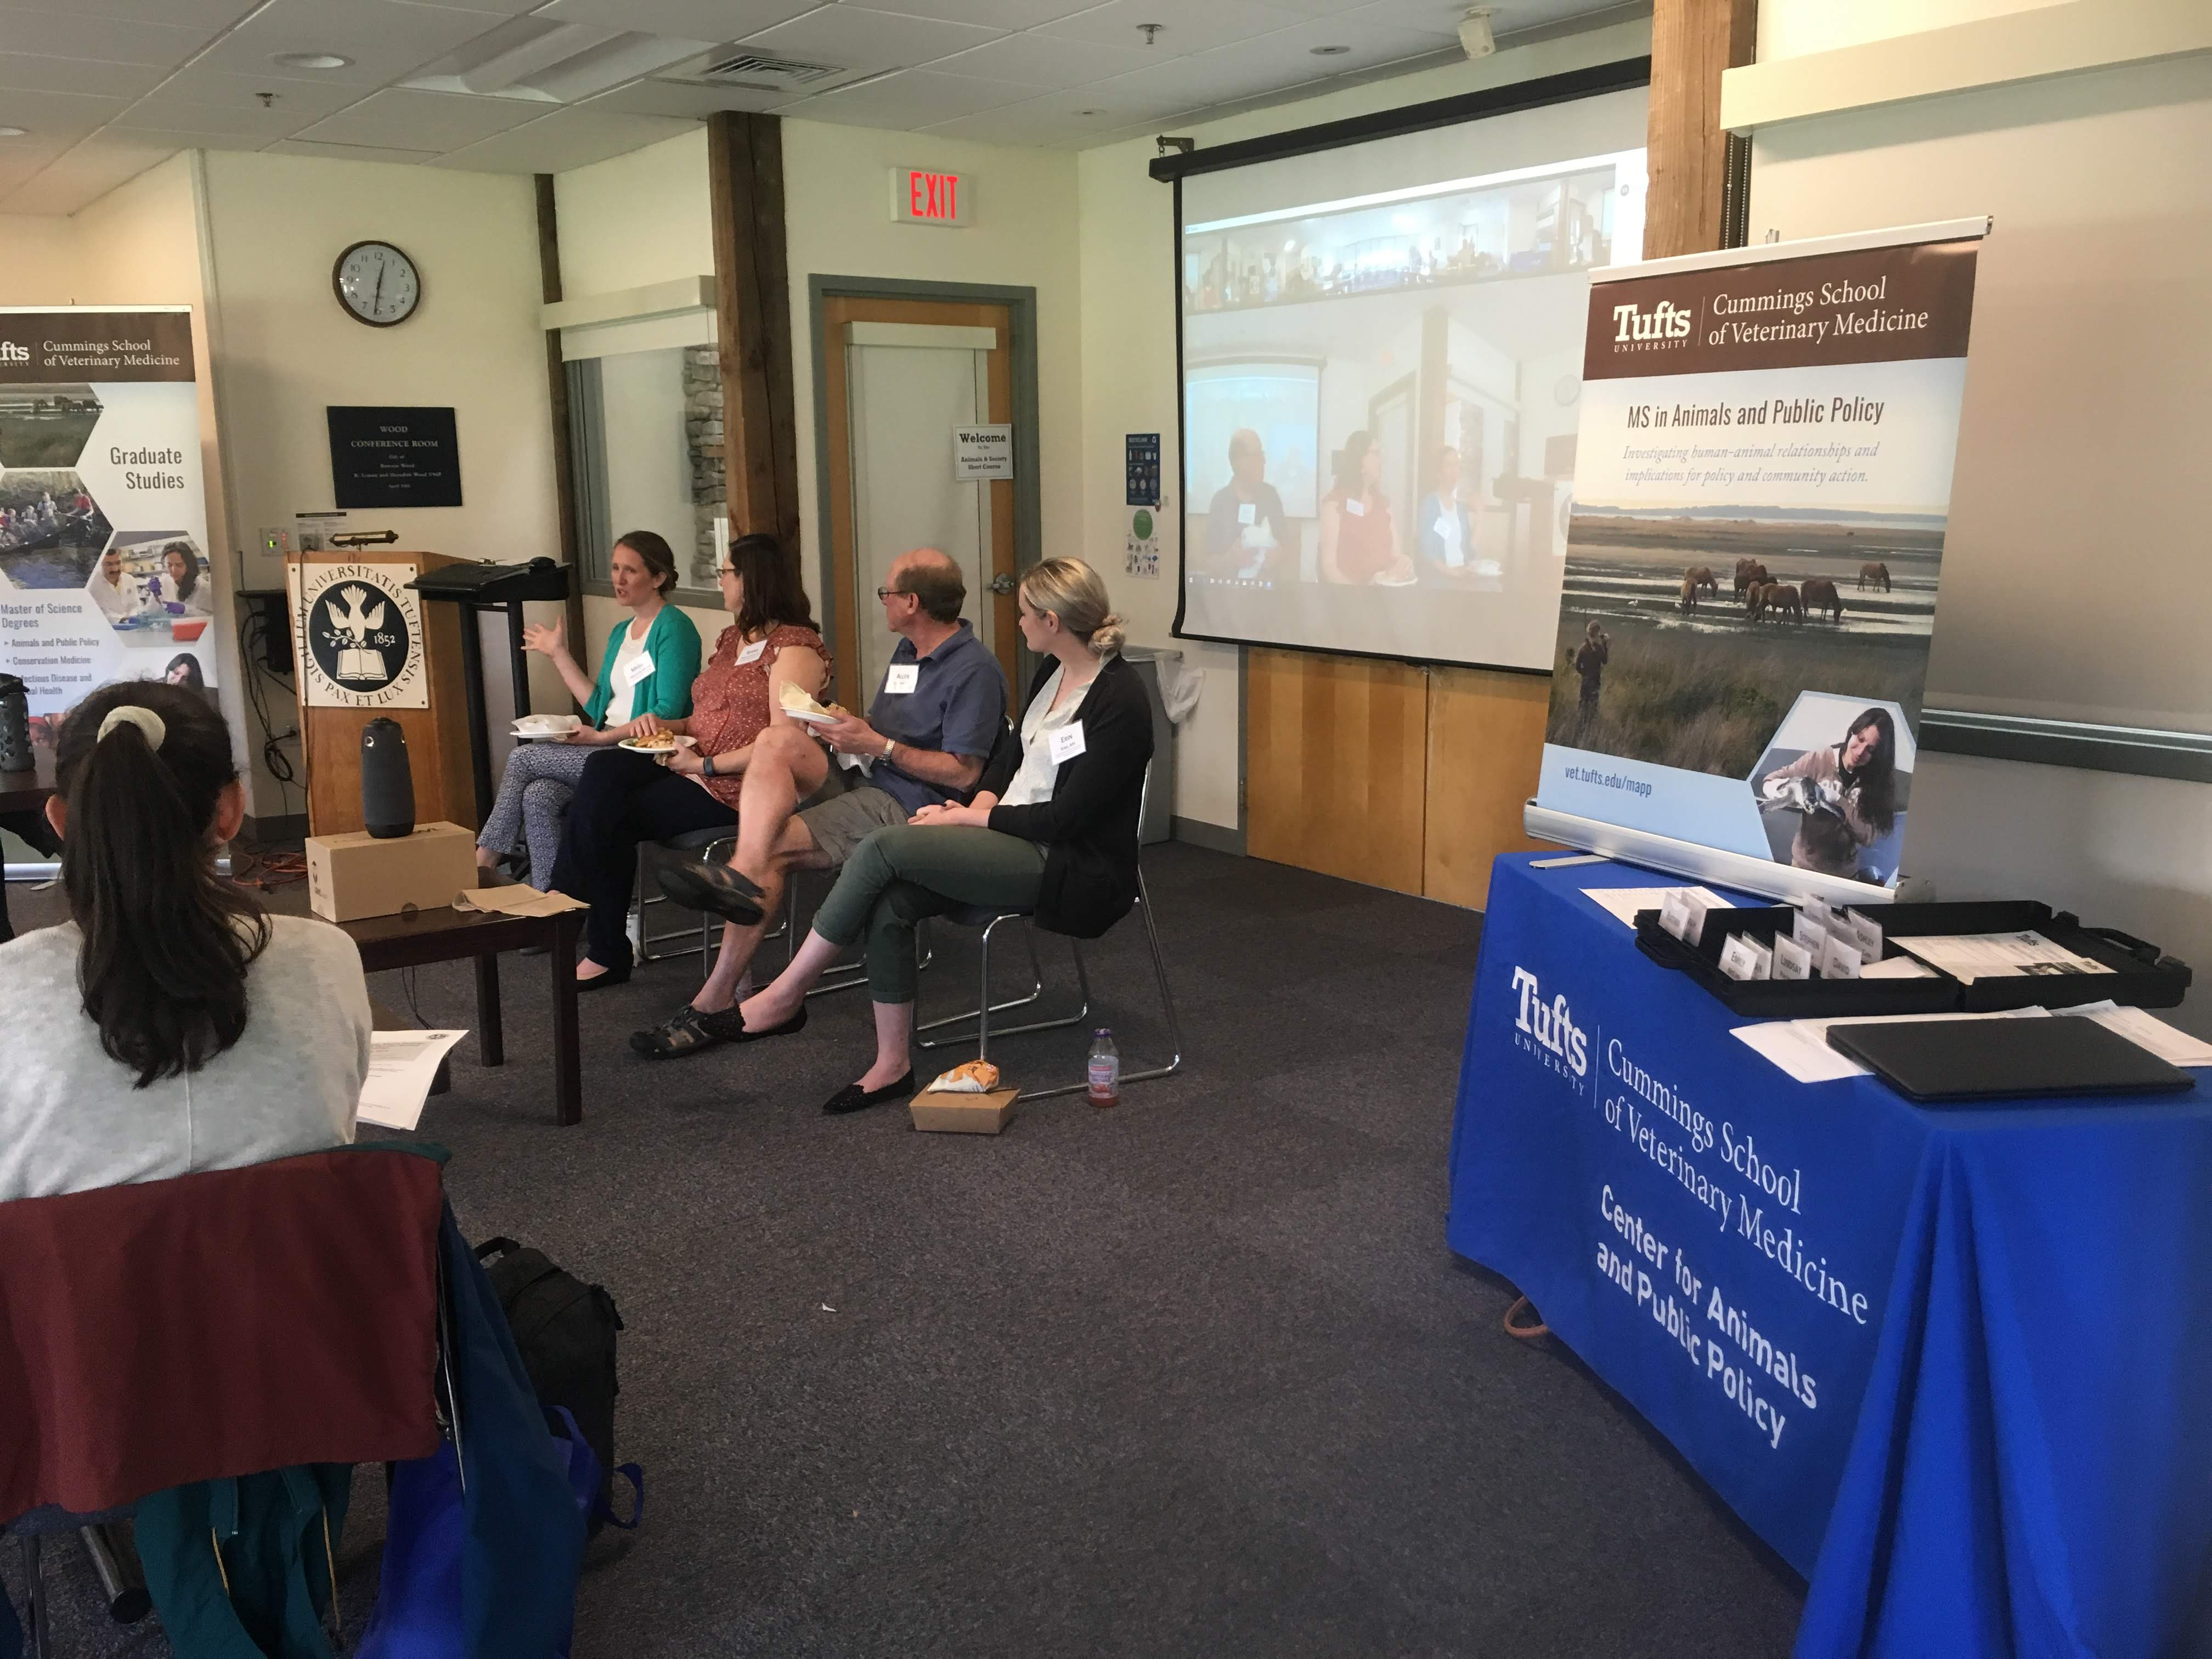 MS in Animals and Public Policy faculty and alumni spoke about Career Pathways in Animals and Public Policy